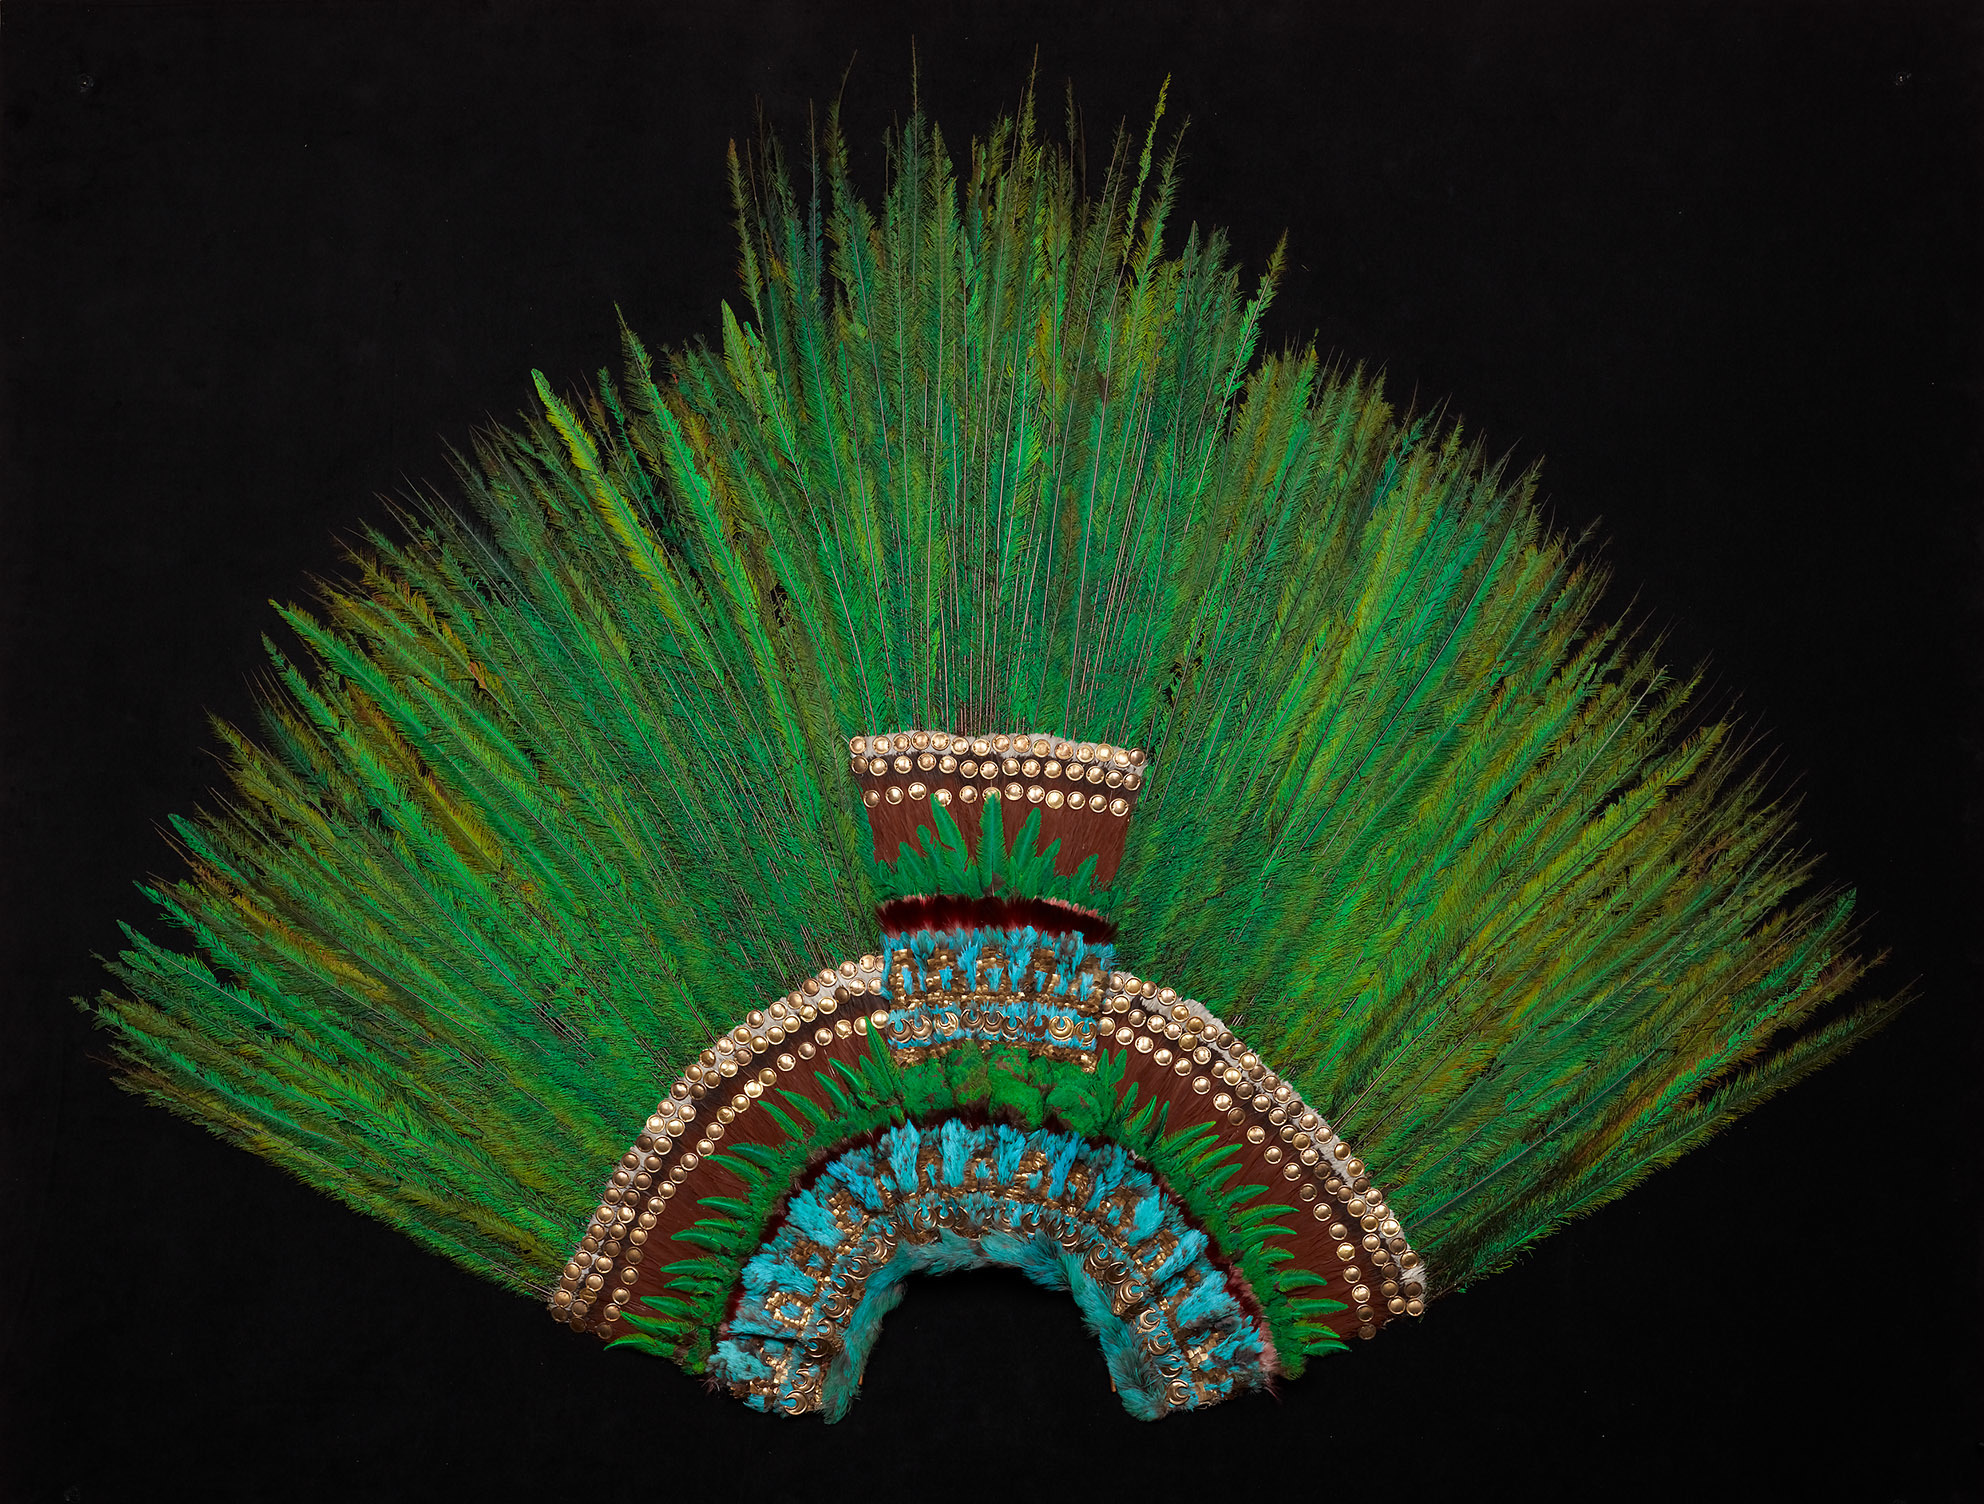 Aztec Feather Headdress | Early 16th Century © KHM-Museumsverband